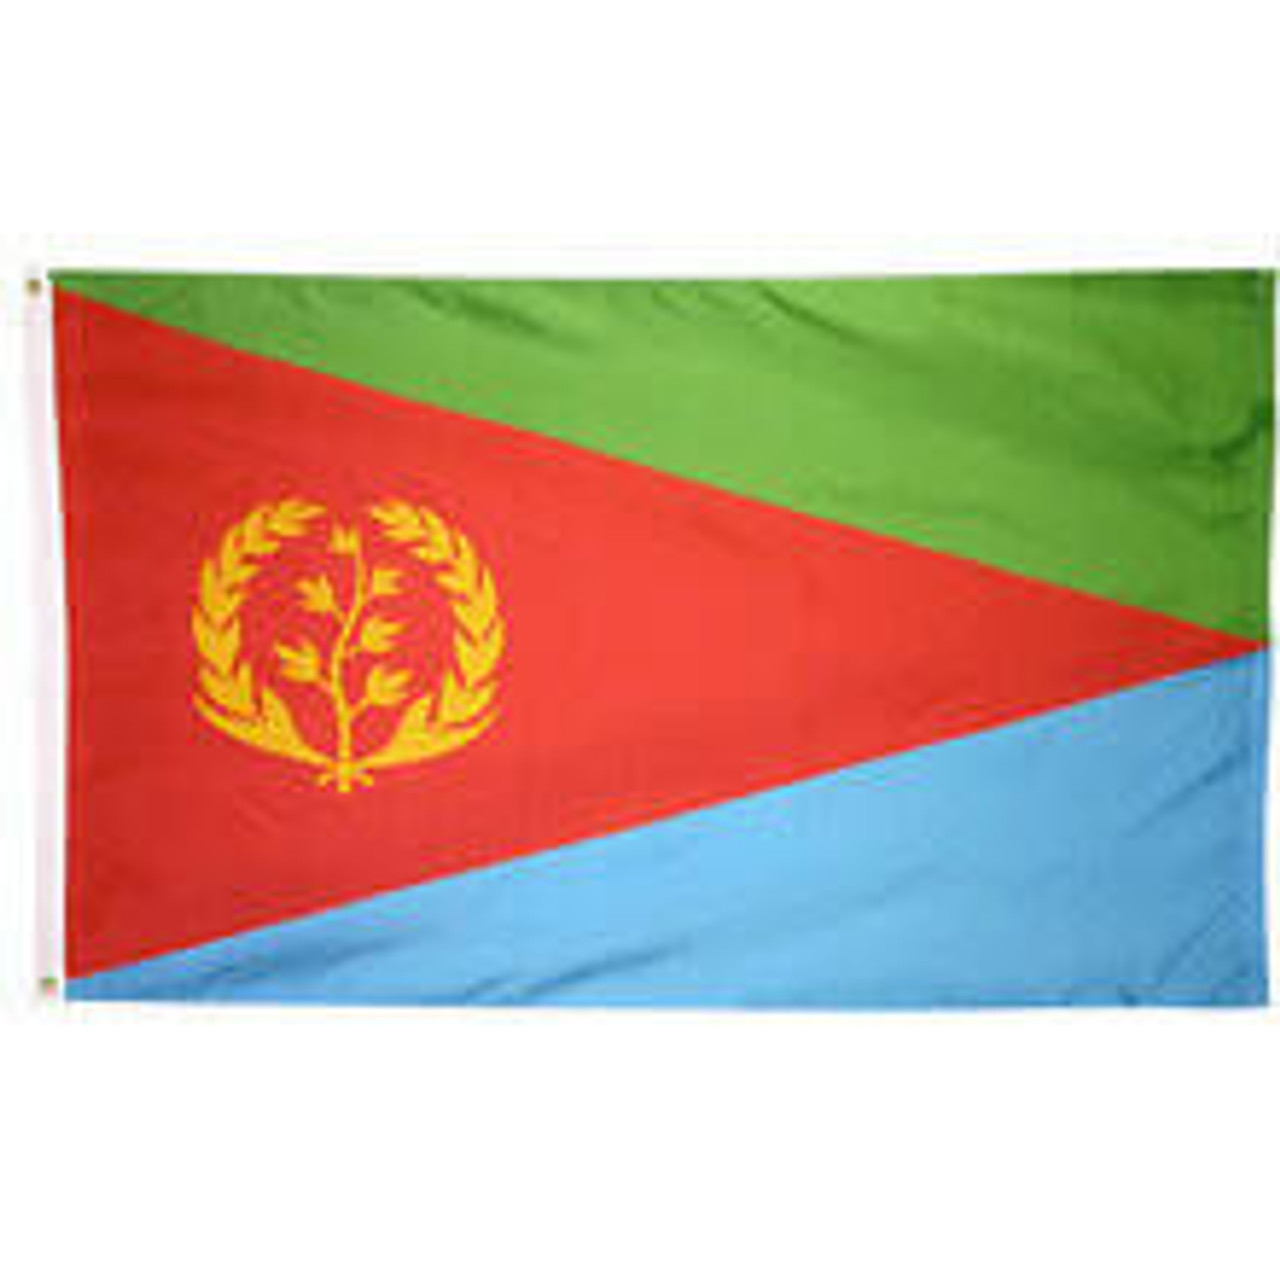 An Eritrea Flag made of nylon with lock stitching, polyester canvas heading, and brass grommets. Design is three green, red, and blue triangles, the middle red pointed towards the fly side with a gold wreath emblem.